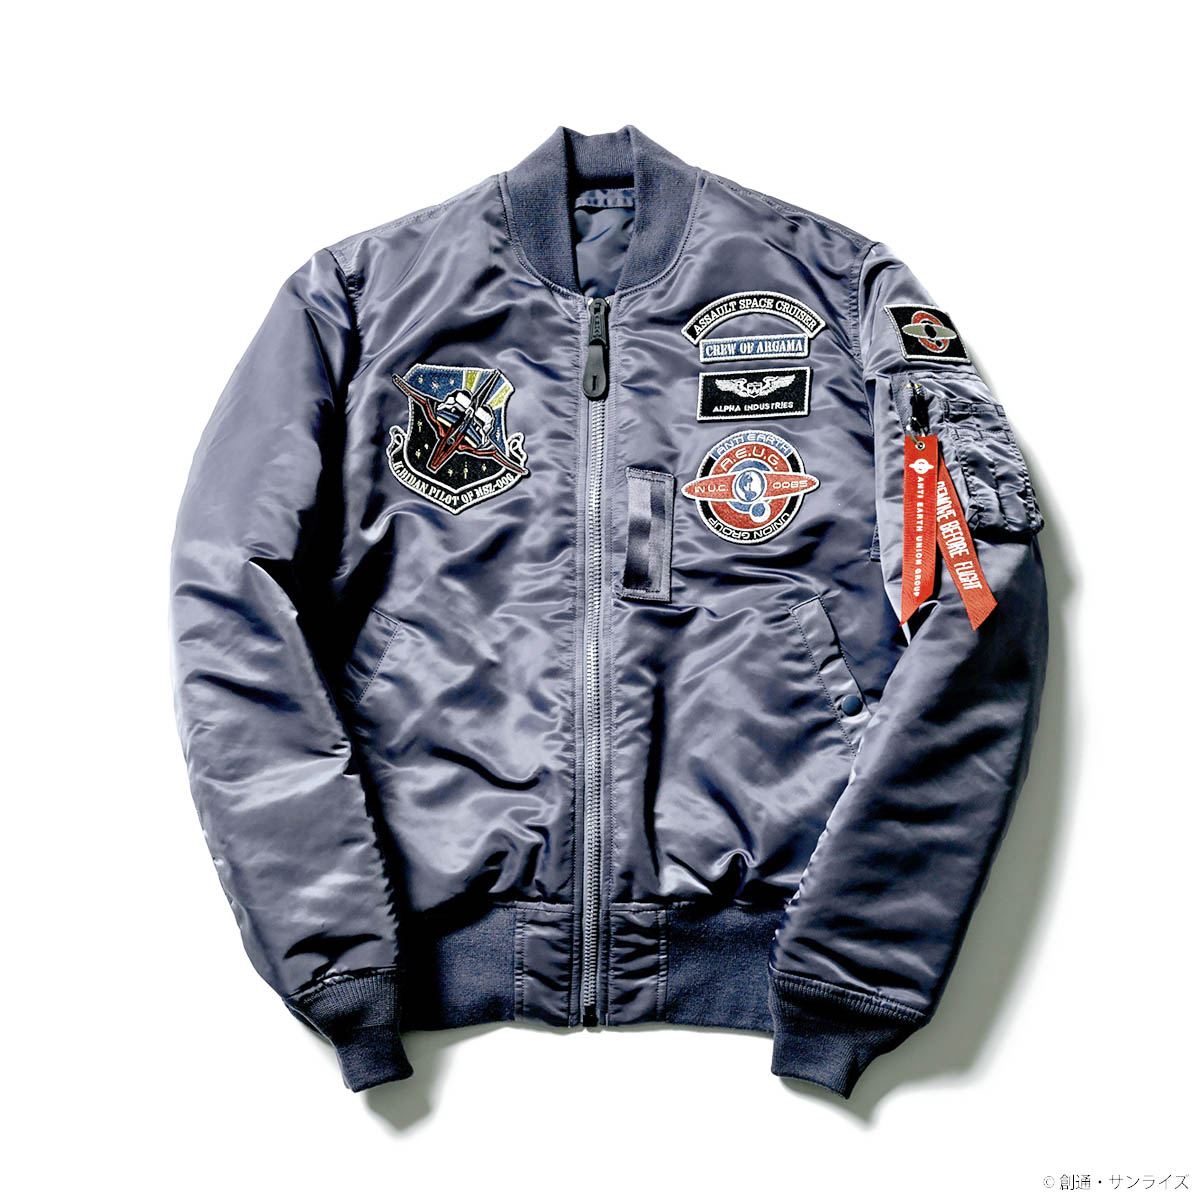 STRICT-G × ALPHA INDUSTRIES  MA-1『機動戦士Zガンダム』エゥーゴモデル